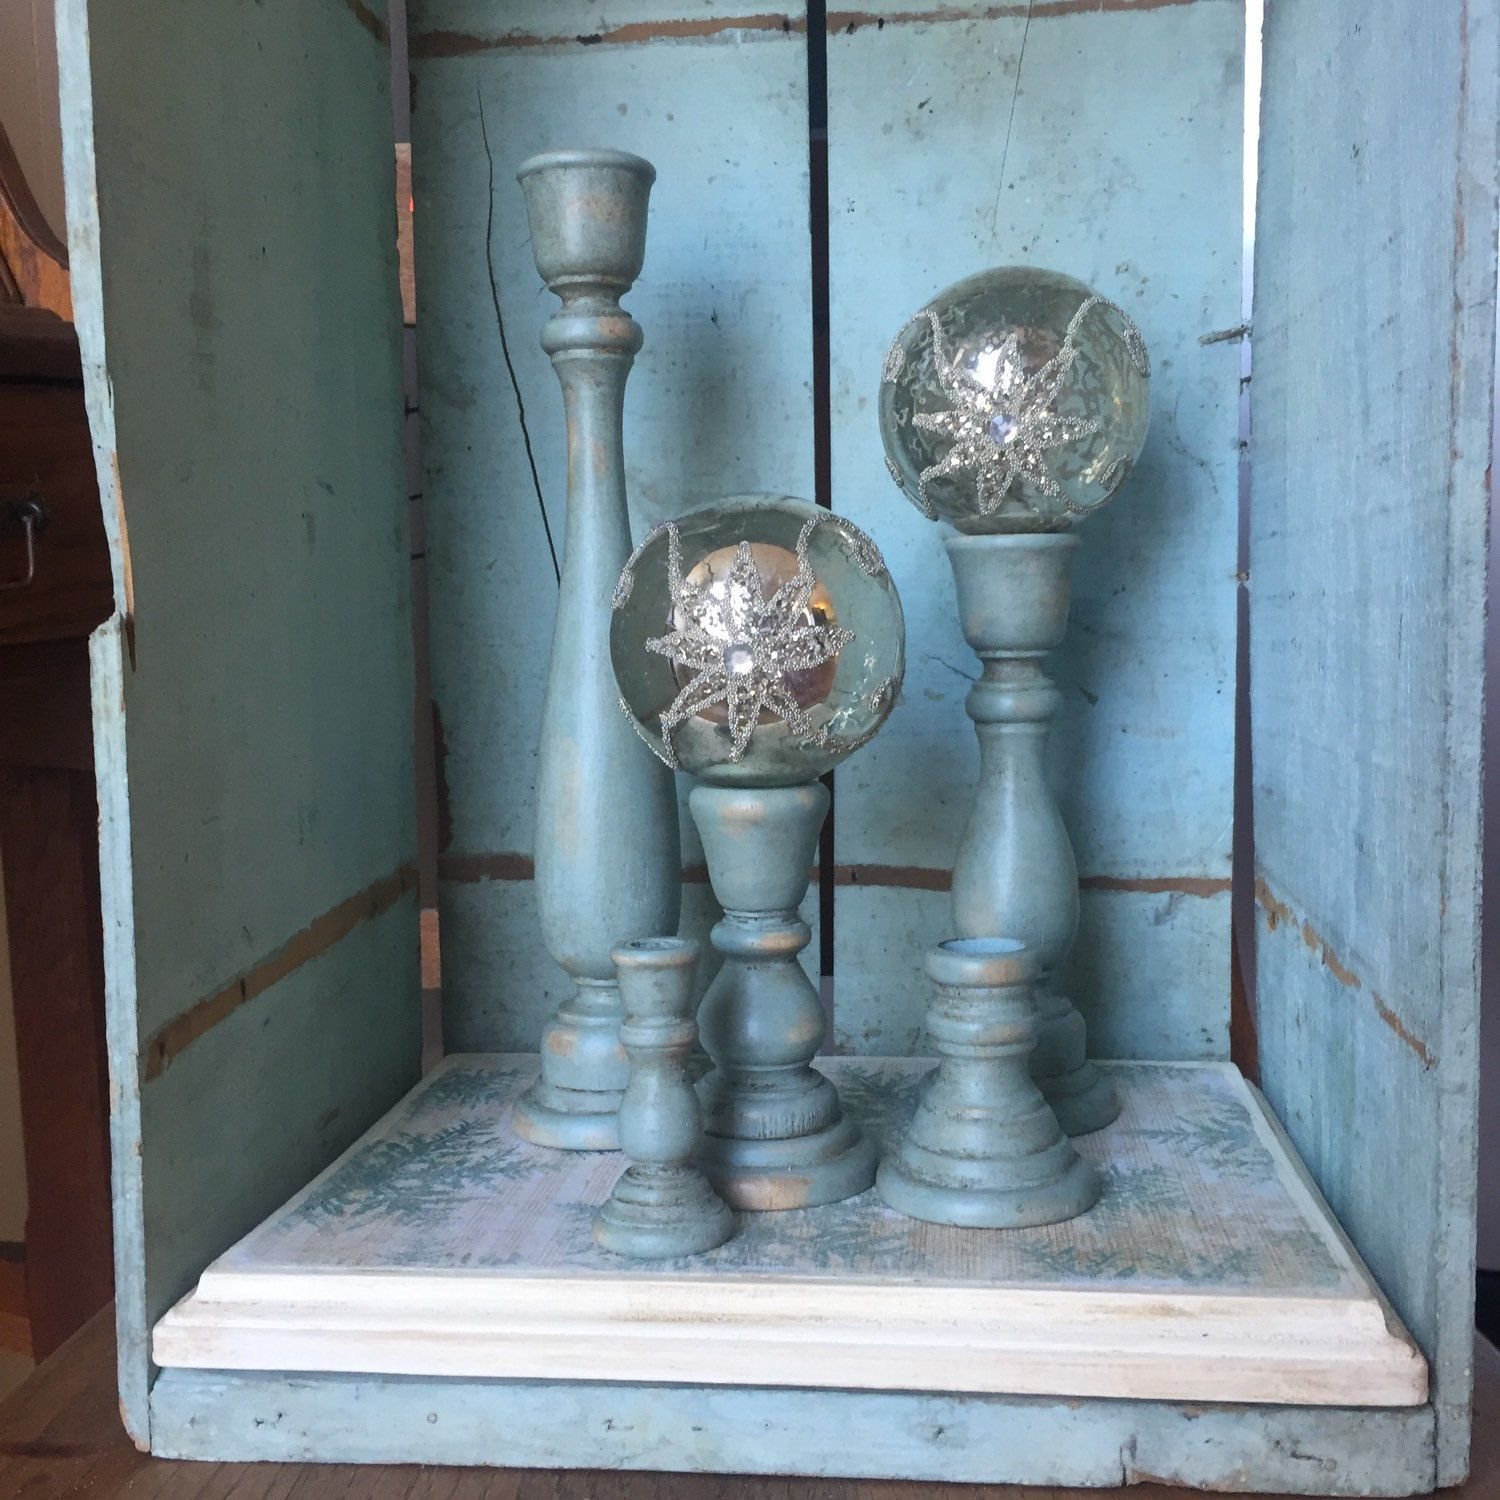 6 Piece Shabby Chic Hand Painted Wood Candle Holder Tray Set For